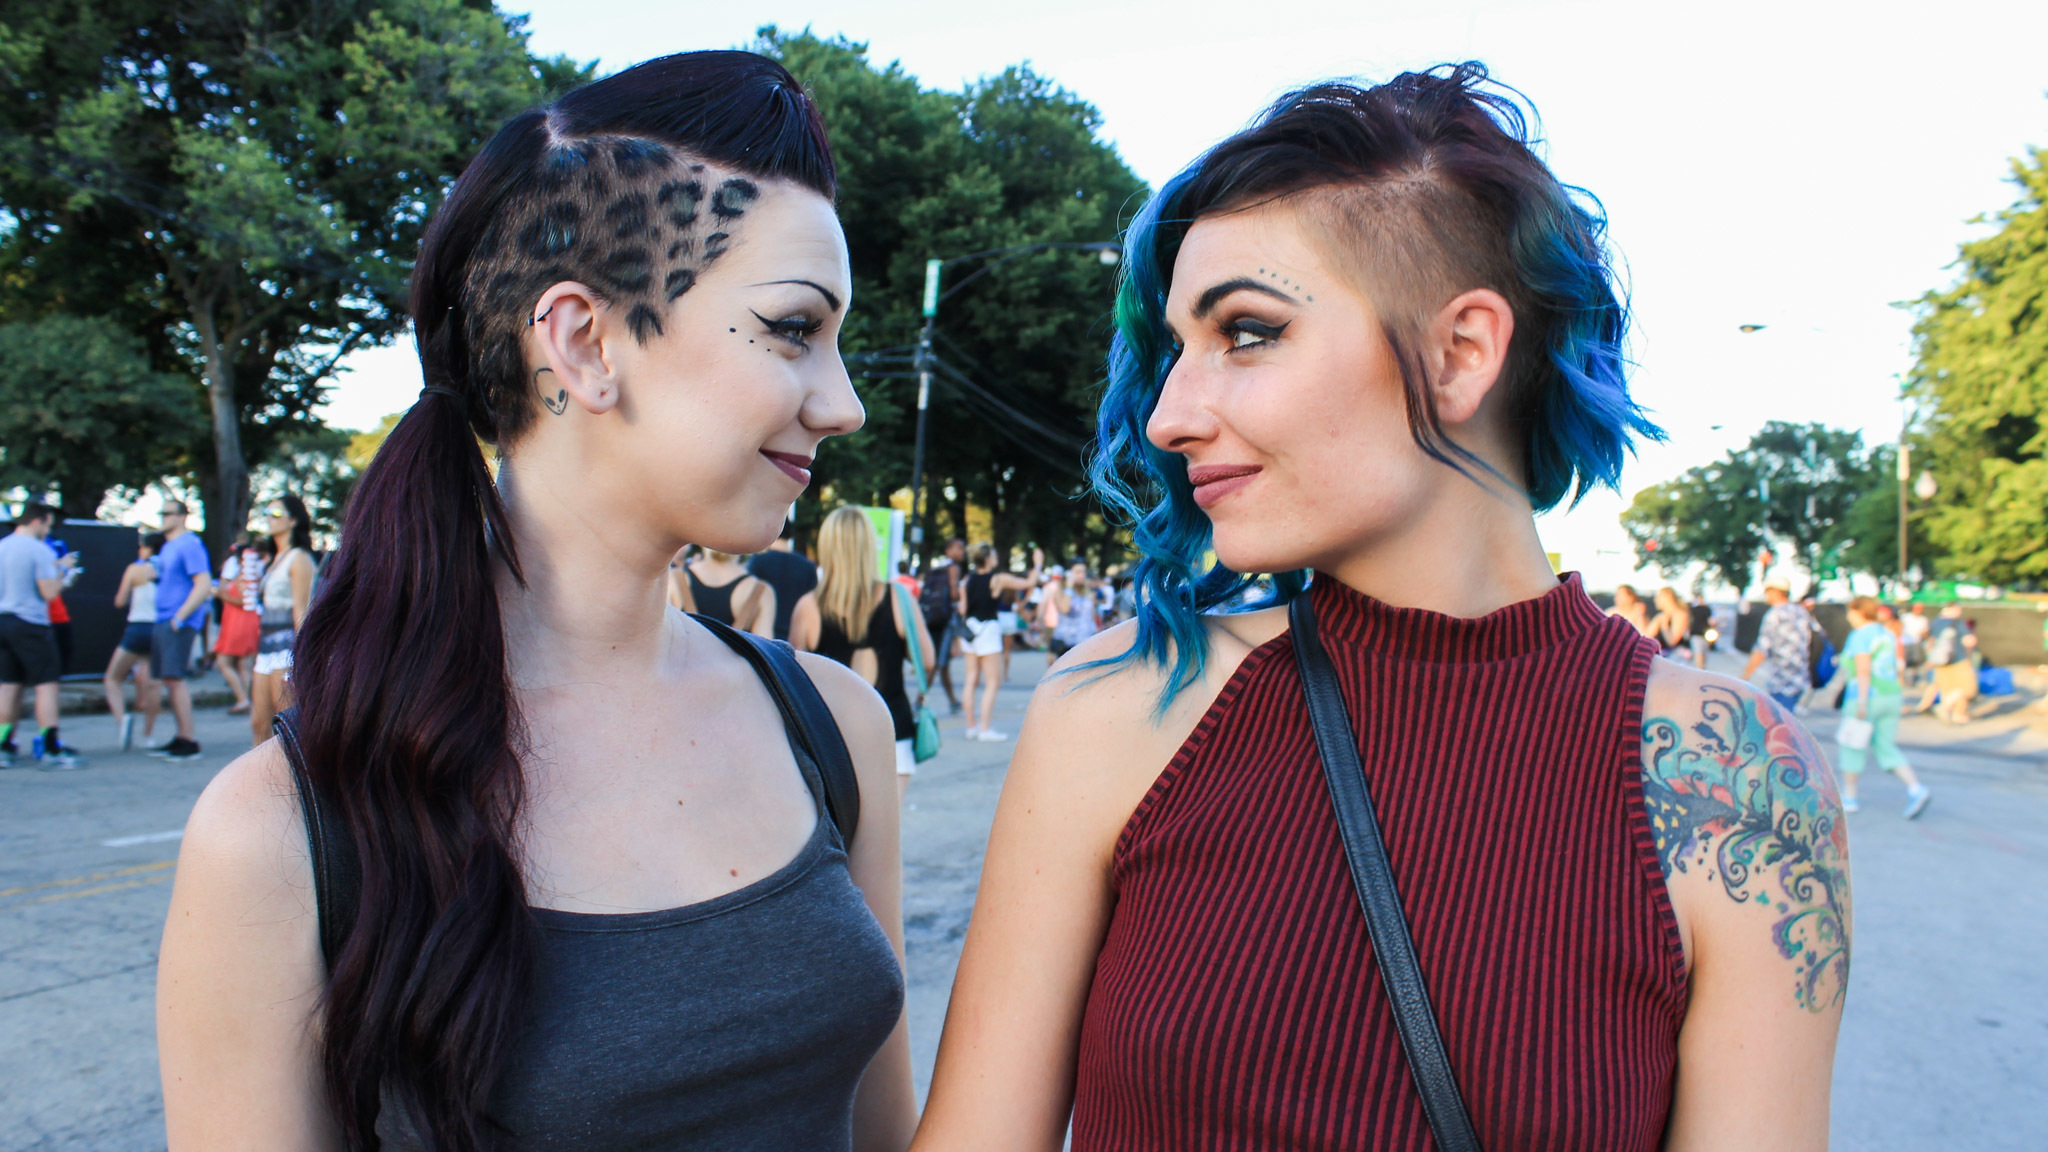 Amid all of the eye candy in Grant Park, we found plenty of notable festival fashion at Lollapalooza 2015.